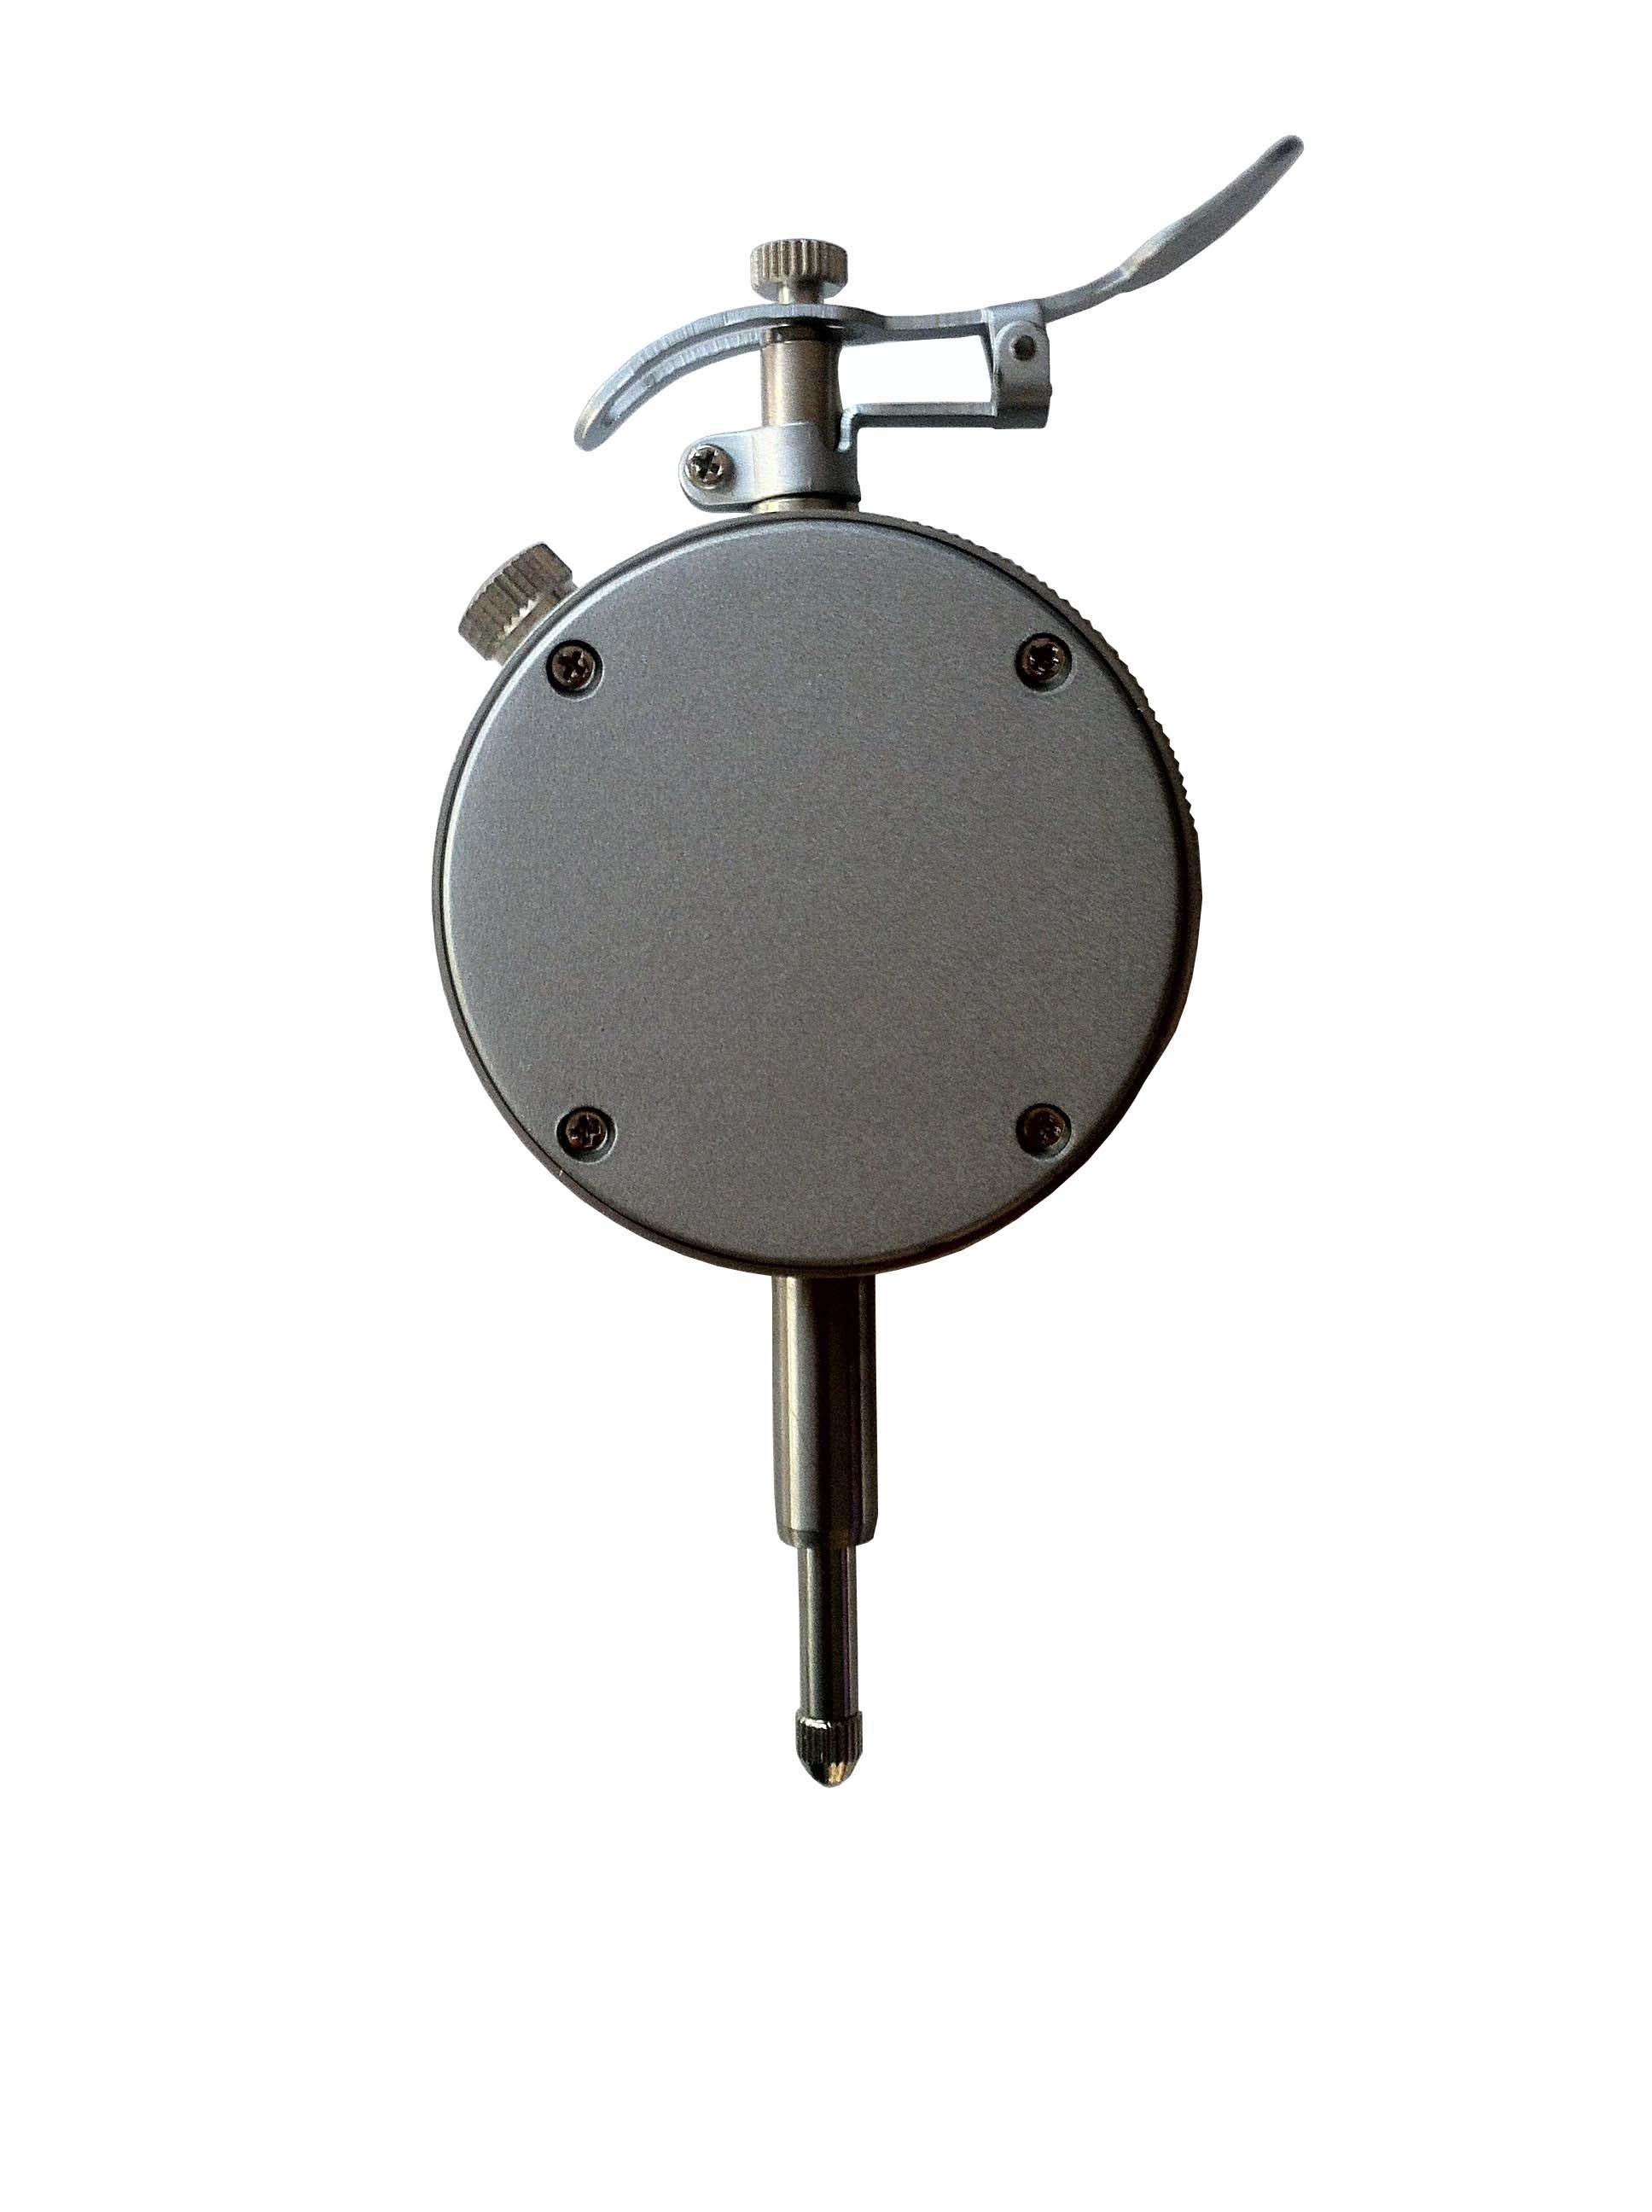 Mechanical Inch Dial Indicator with Lifting Lever on The Left